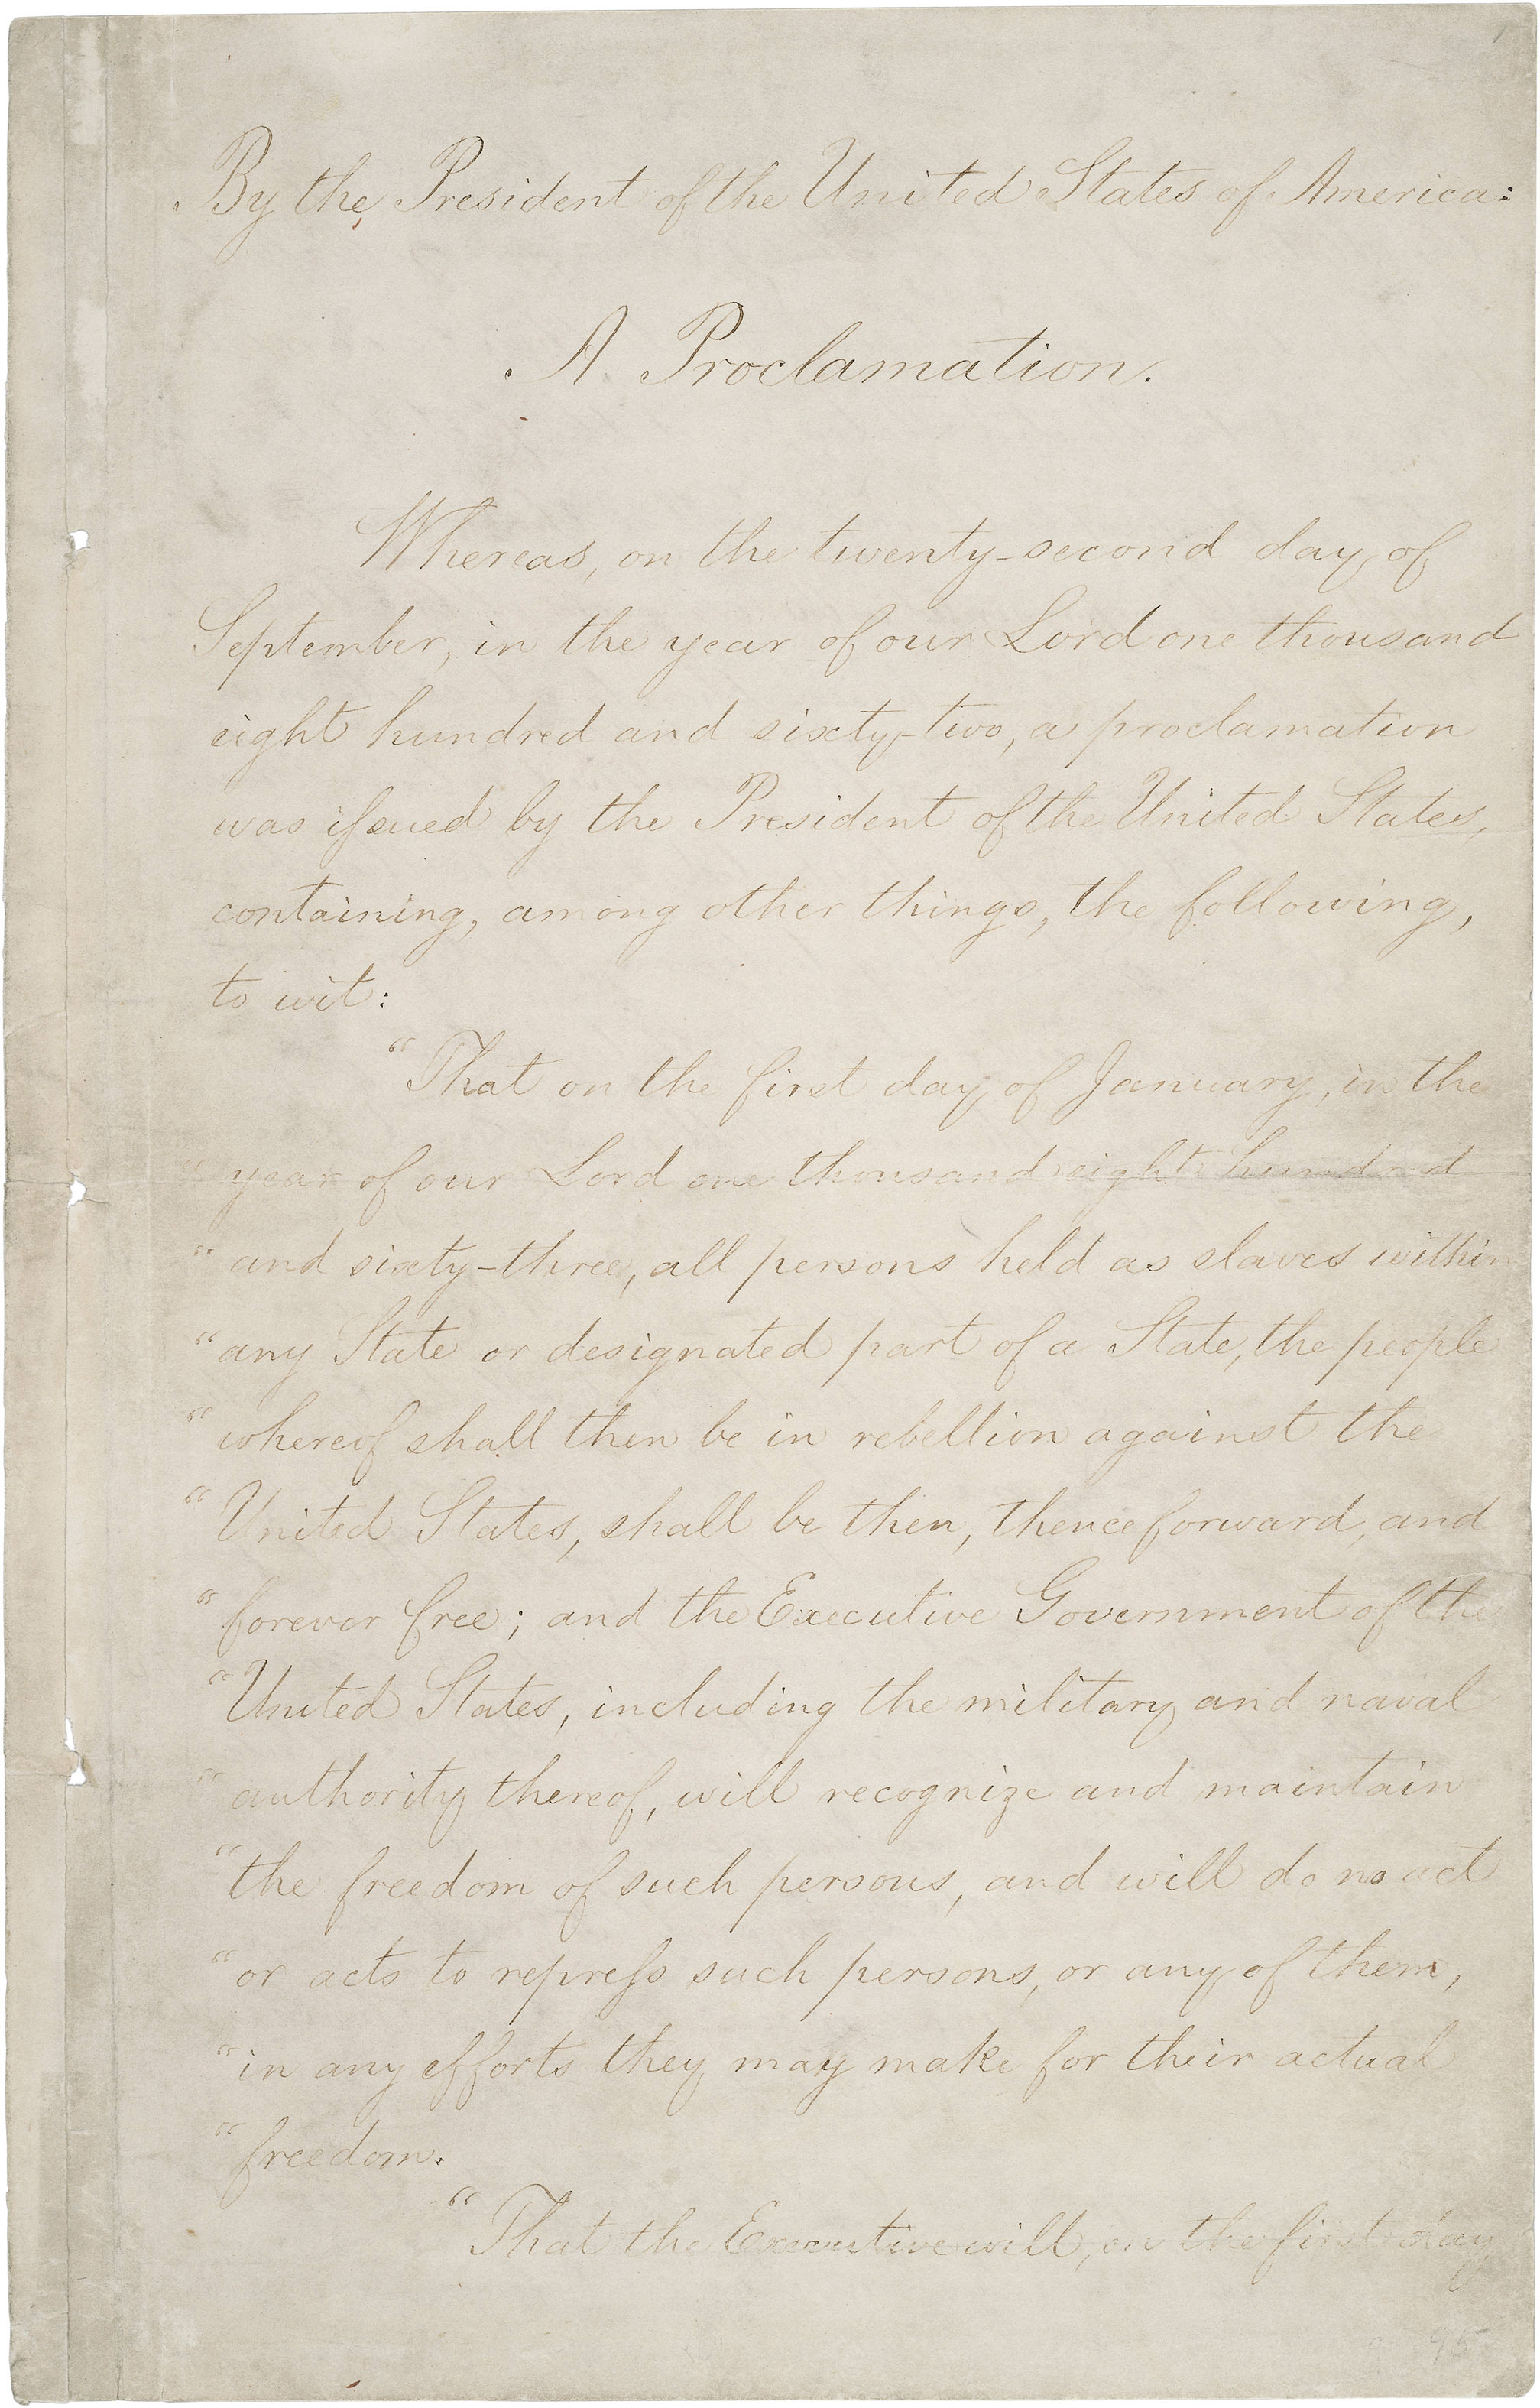 worksheet Emancipation Proclamation Worksheet the emancipation proclamation national archives proclamation